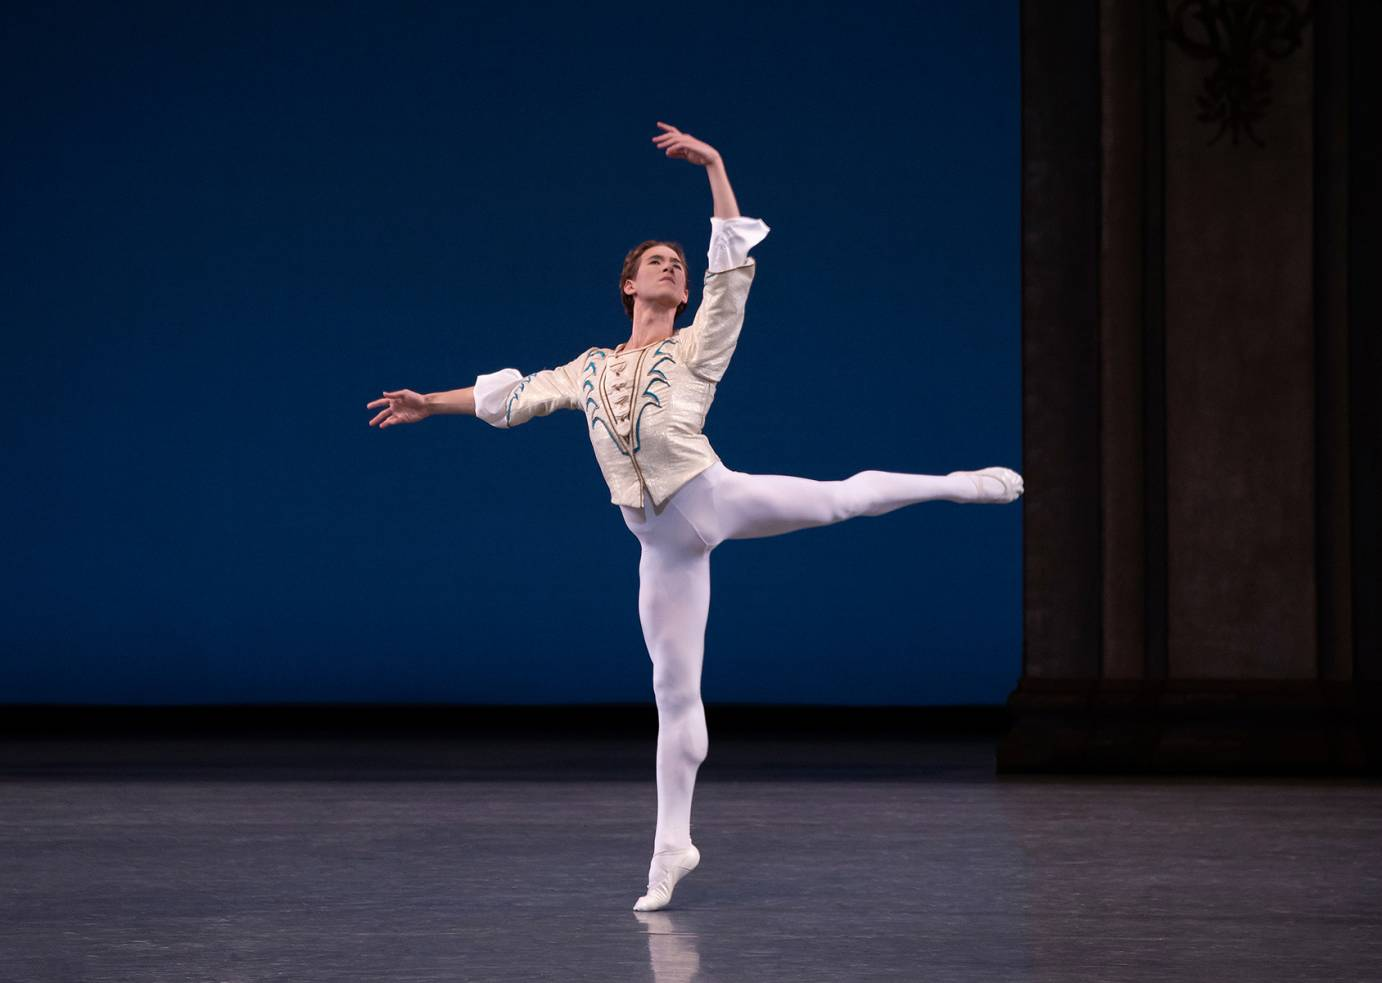 Joseph Gordon balances in an arabesque, one arm rounded overhead, the other extended to the side